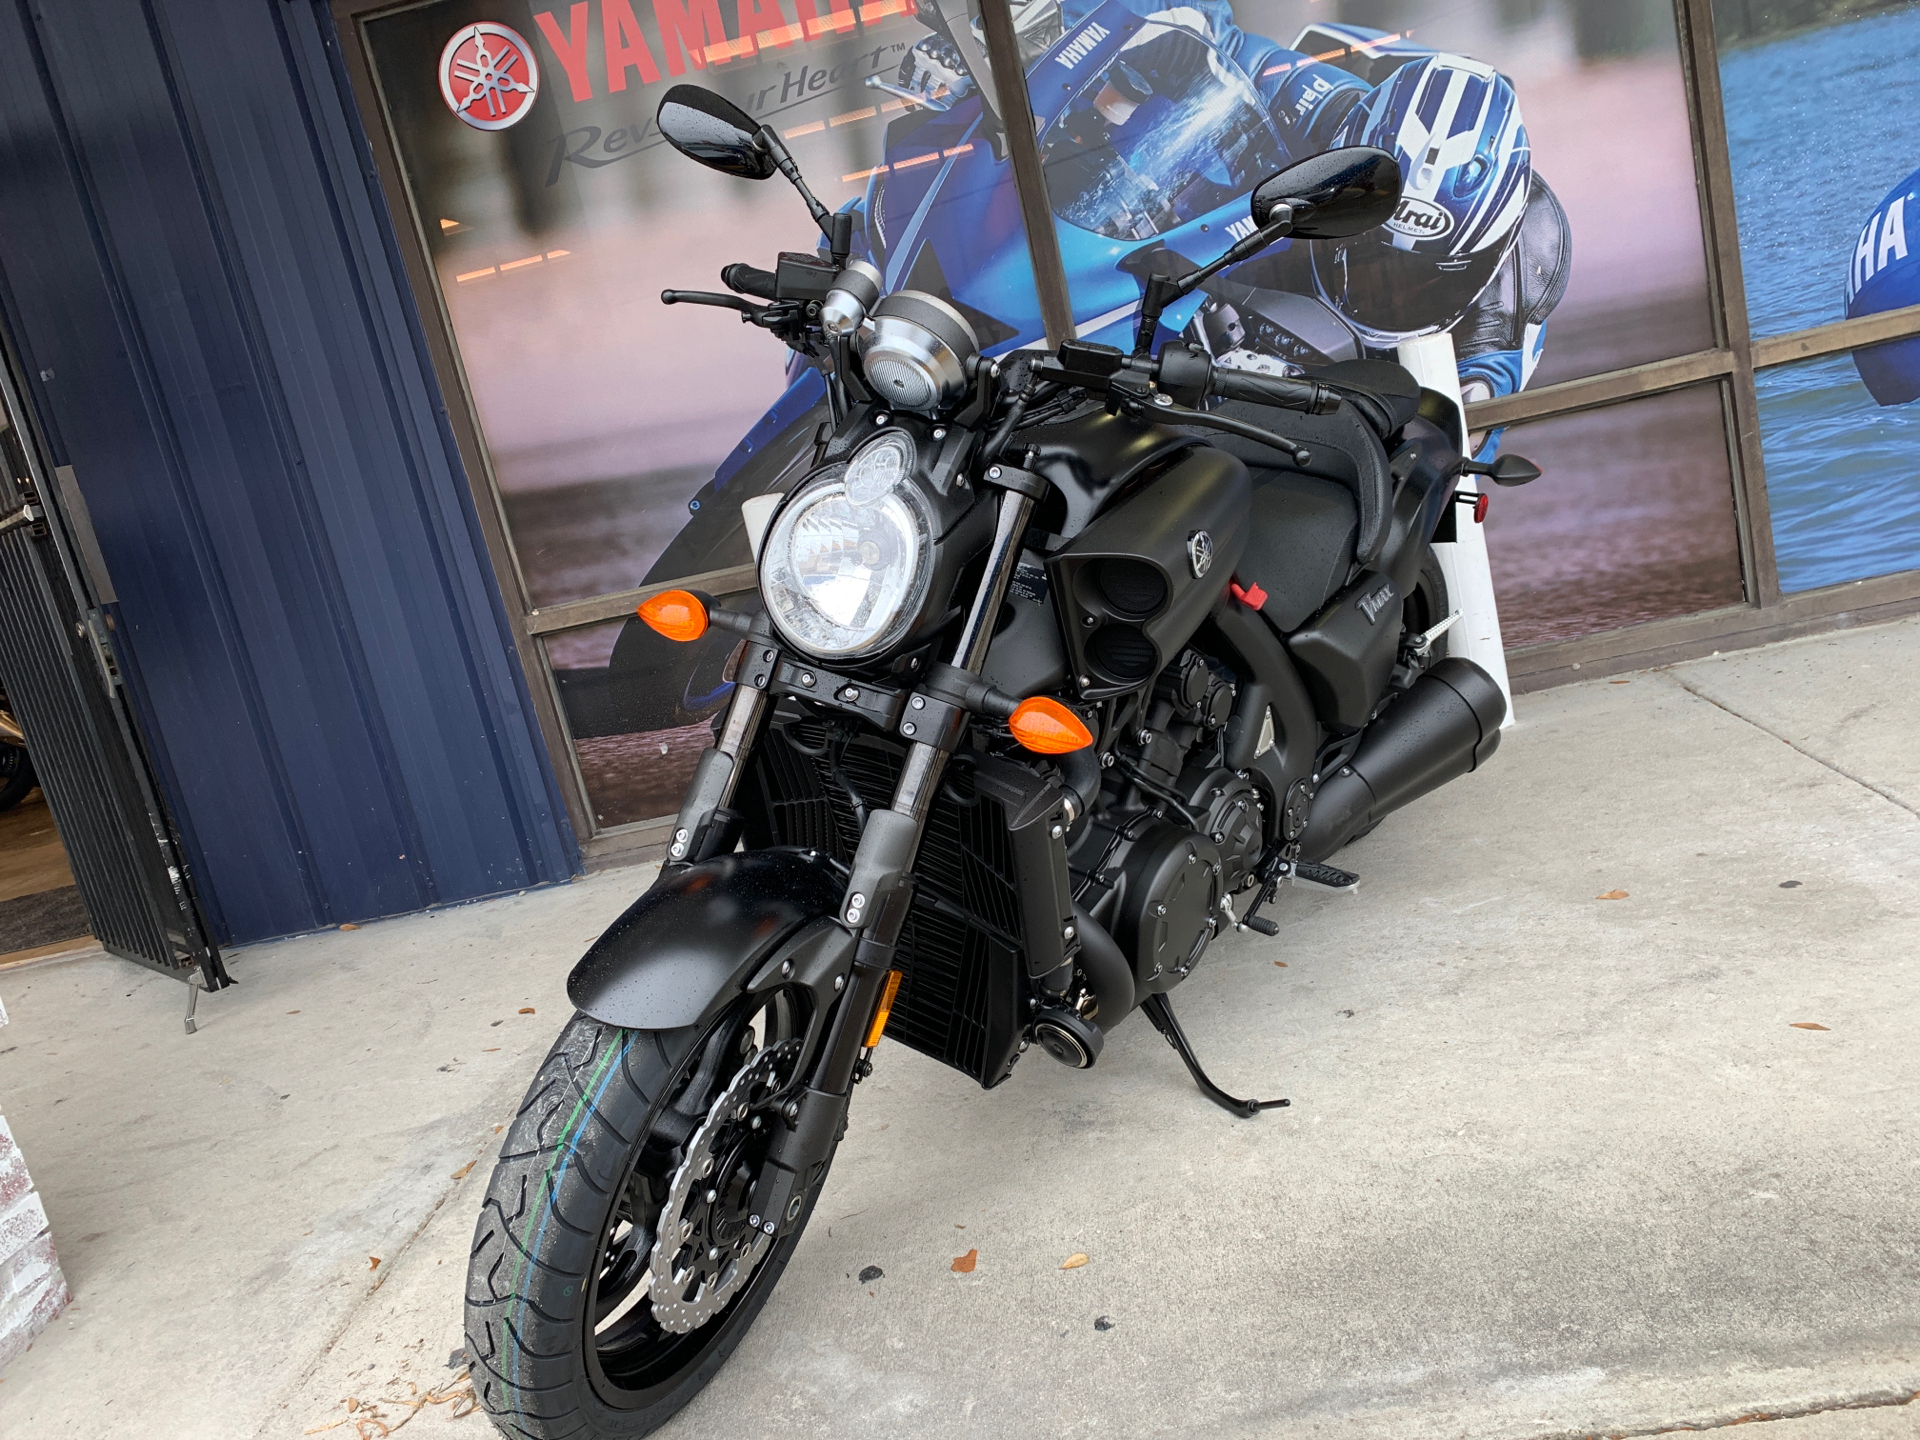 2020 Yamaha VMAX in Orlando, Florida - Photo 8